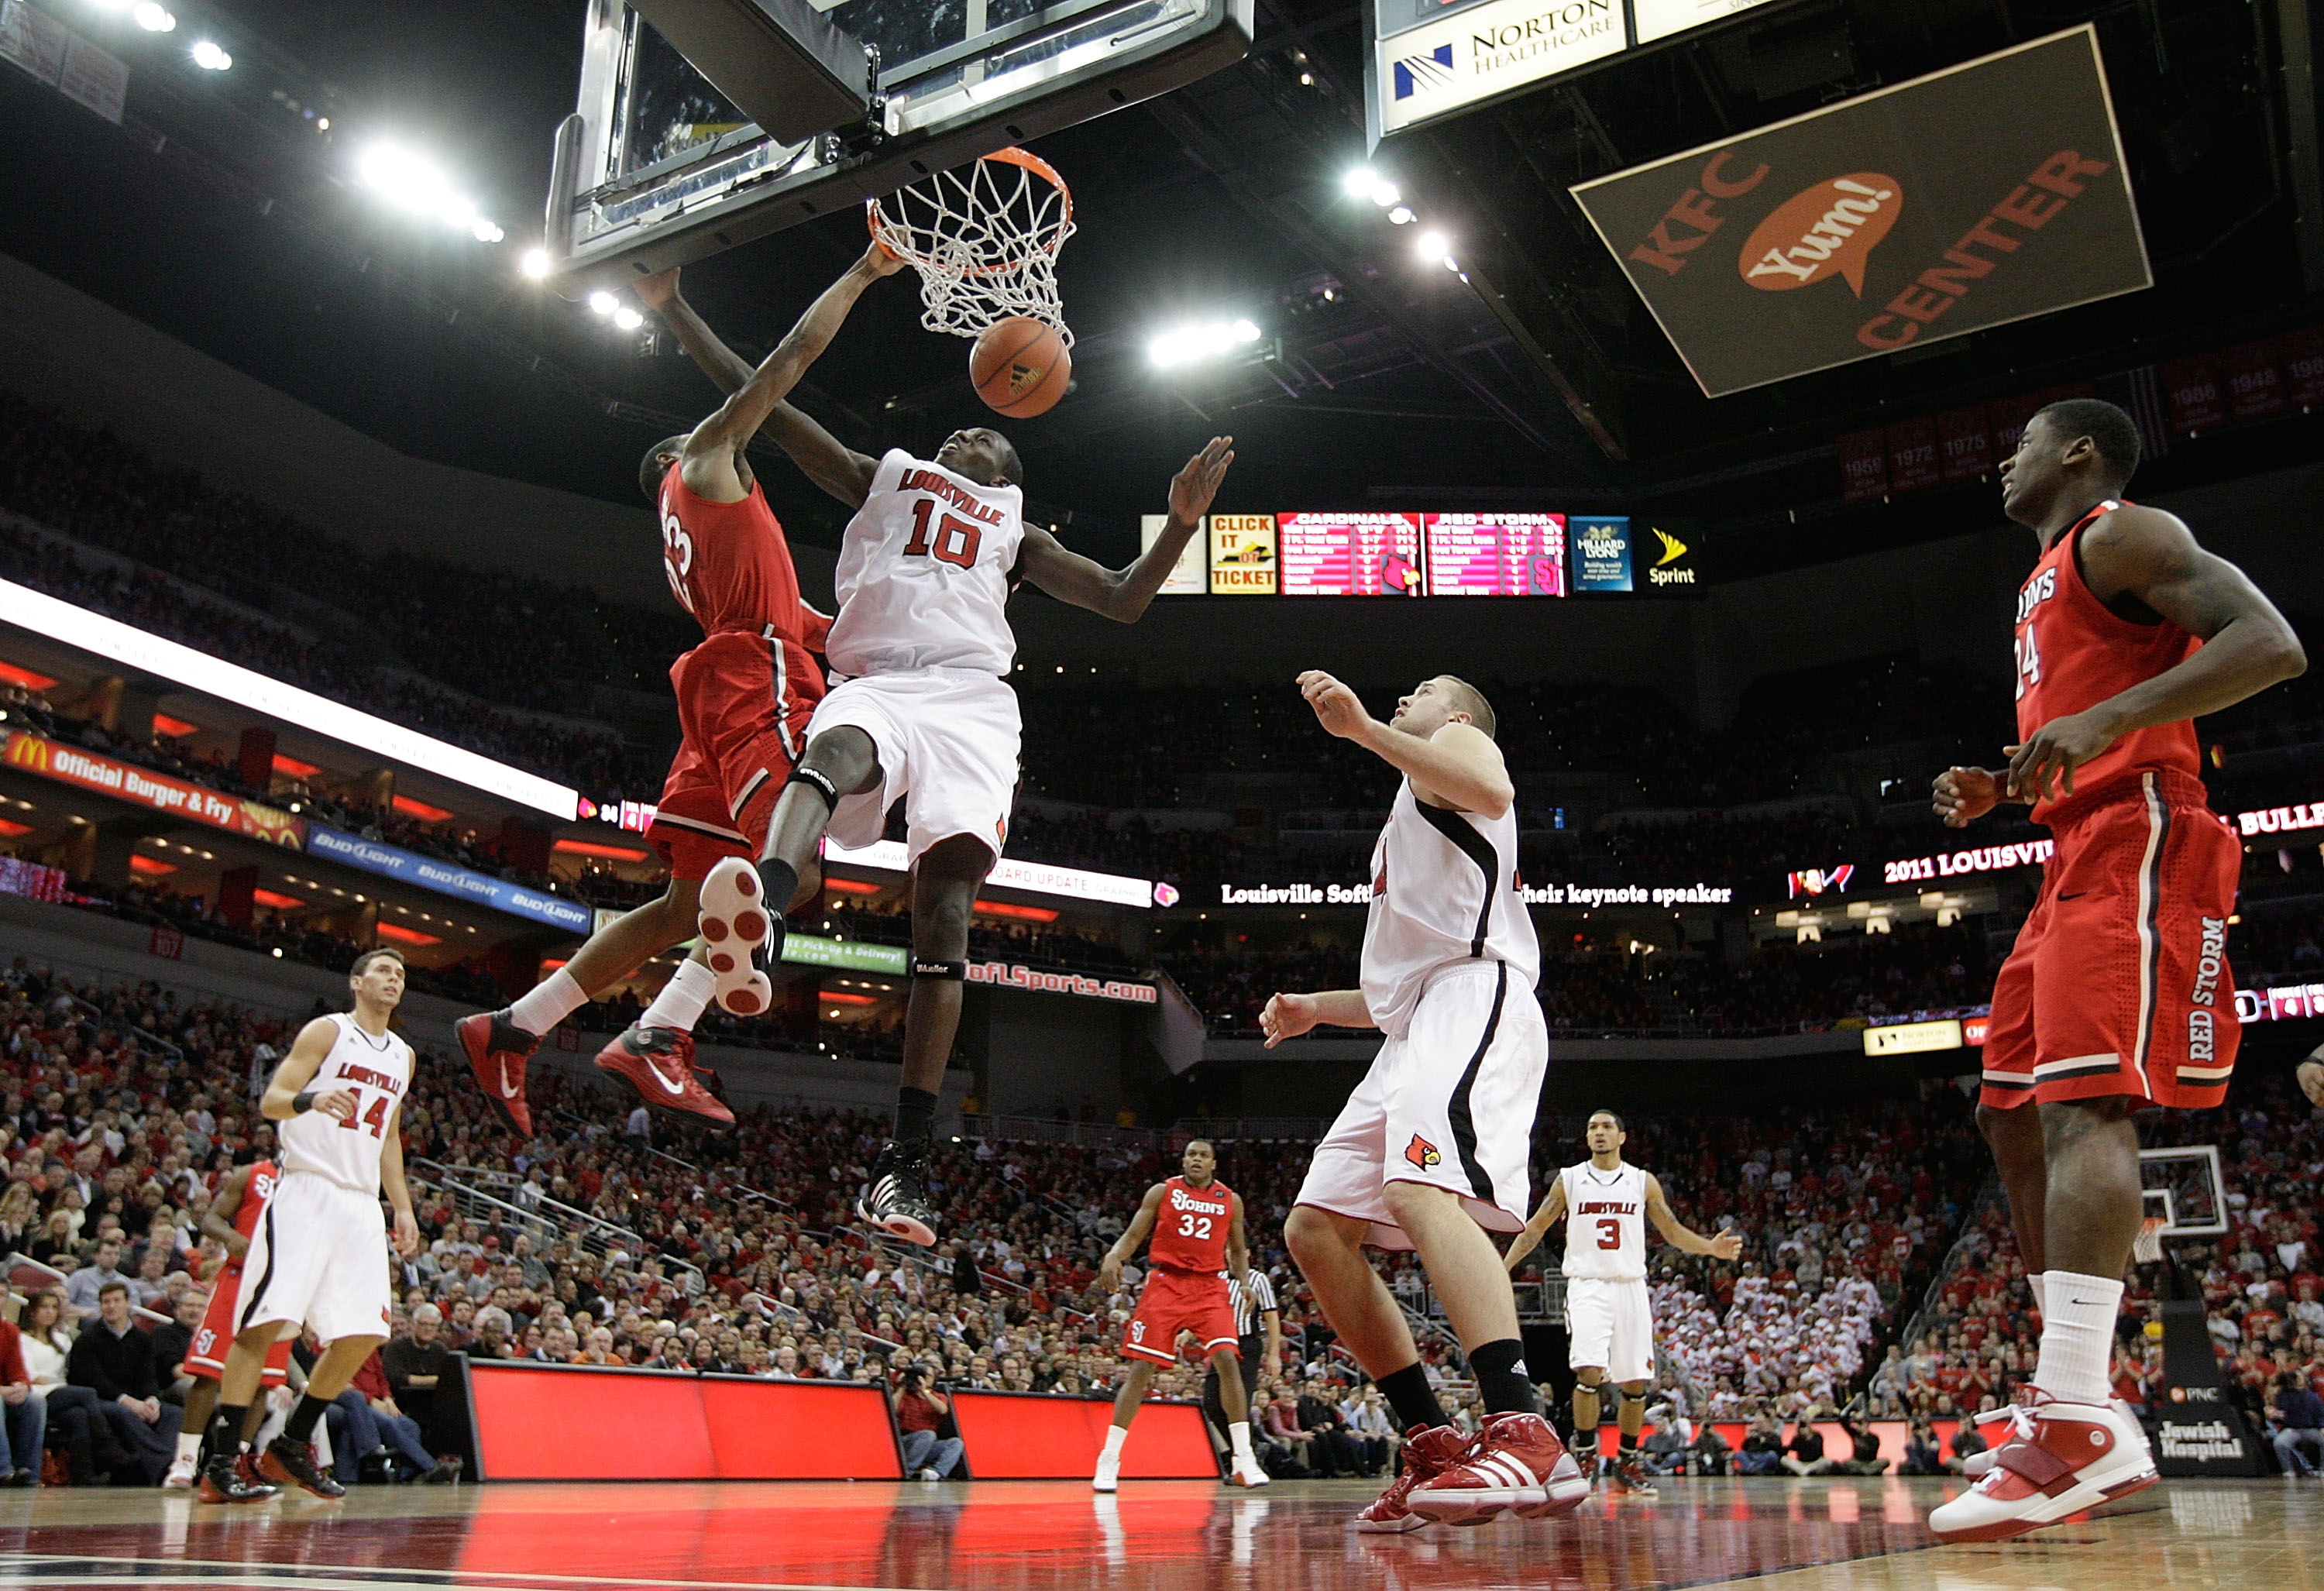 LOUISVILLE, KY - JANUARY 19:   Paris Horne #23 of the St. John's Red Storm dunks the ball while defended by Gorgui Deng #10 of the Louisville Cardinals during the Big East Conference game  at the KFC Yum! Center on January 19, 2011 in Louisville, Kentucky